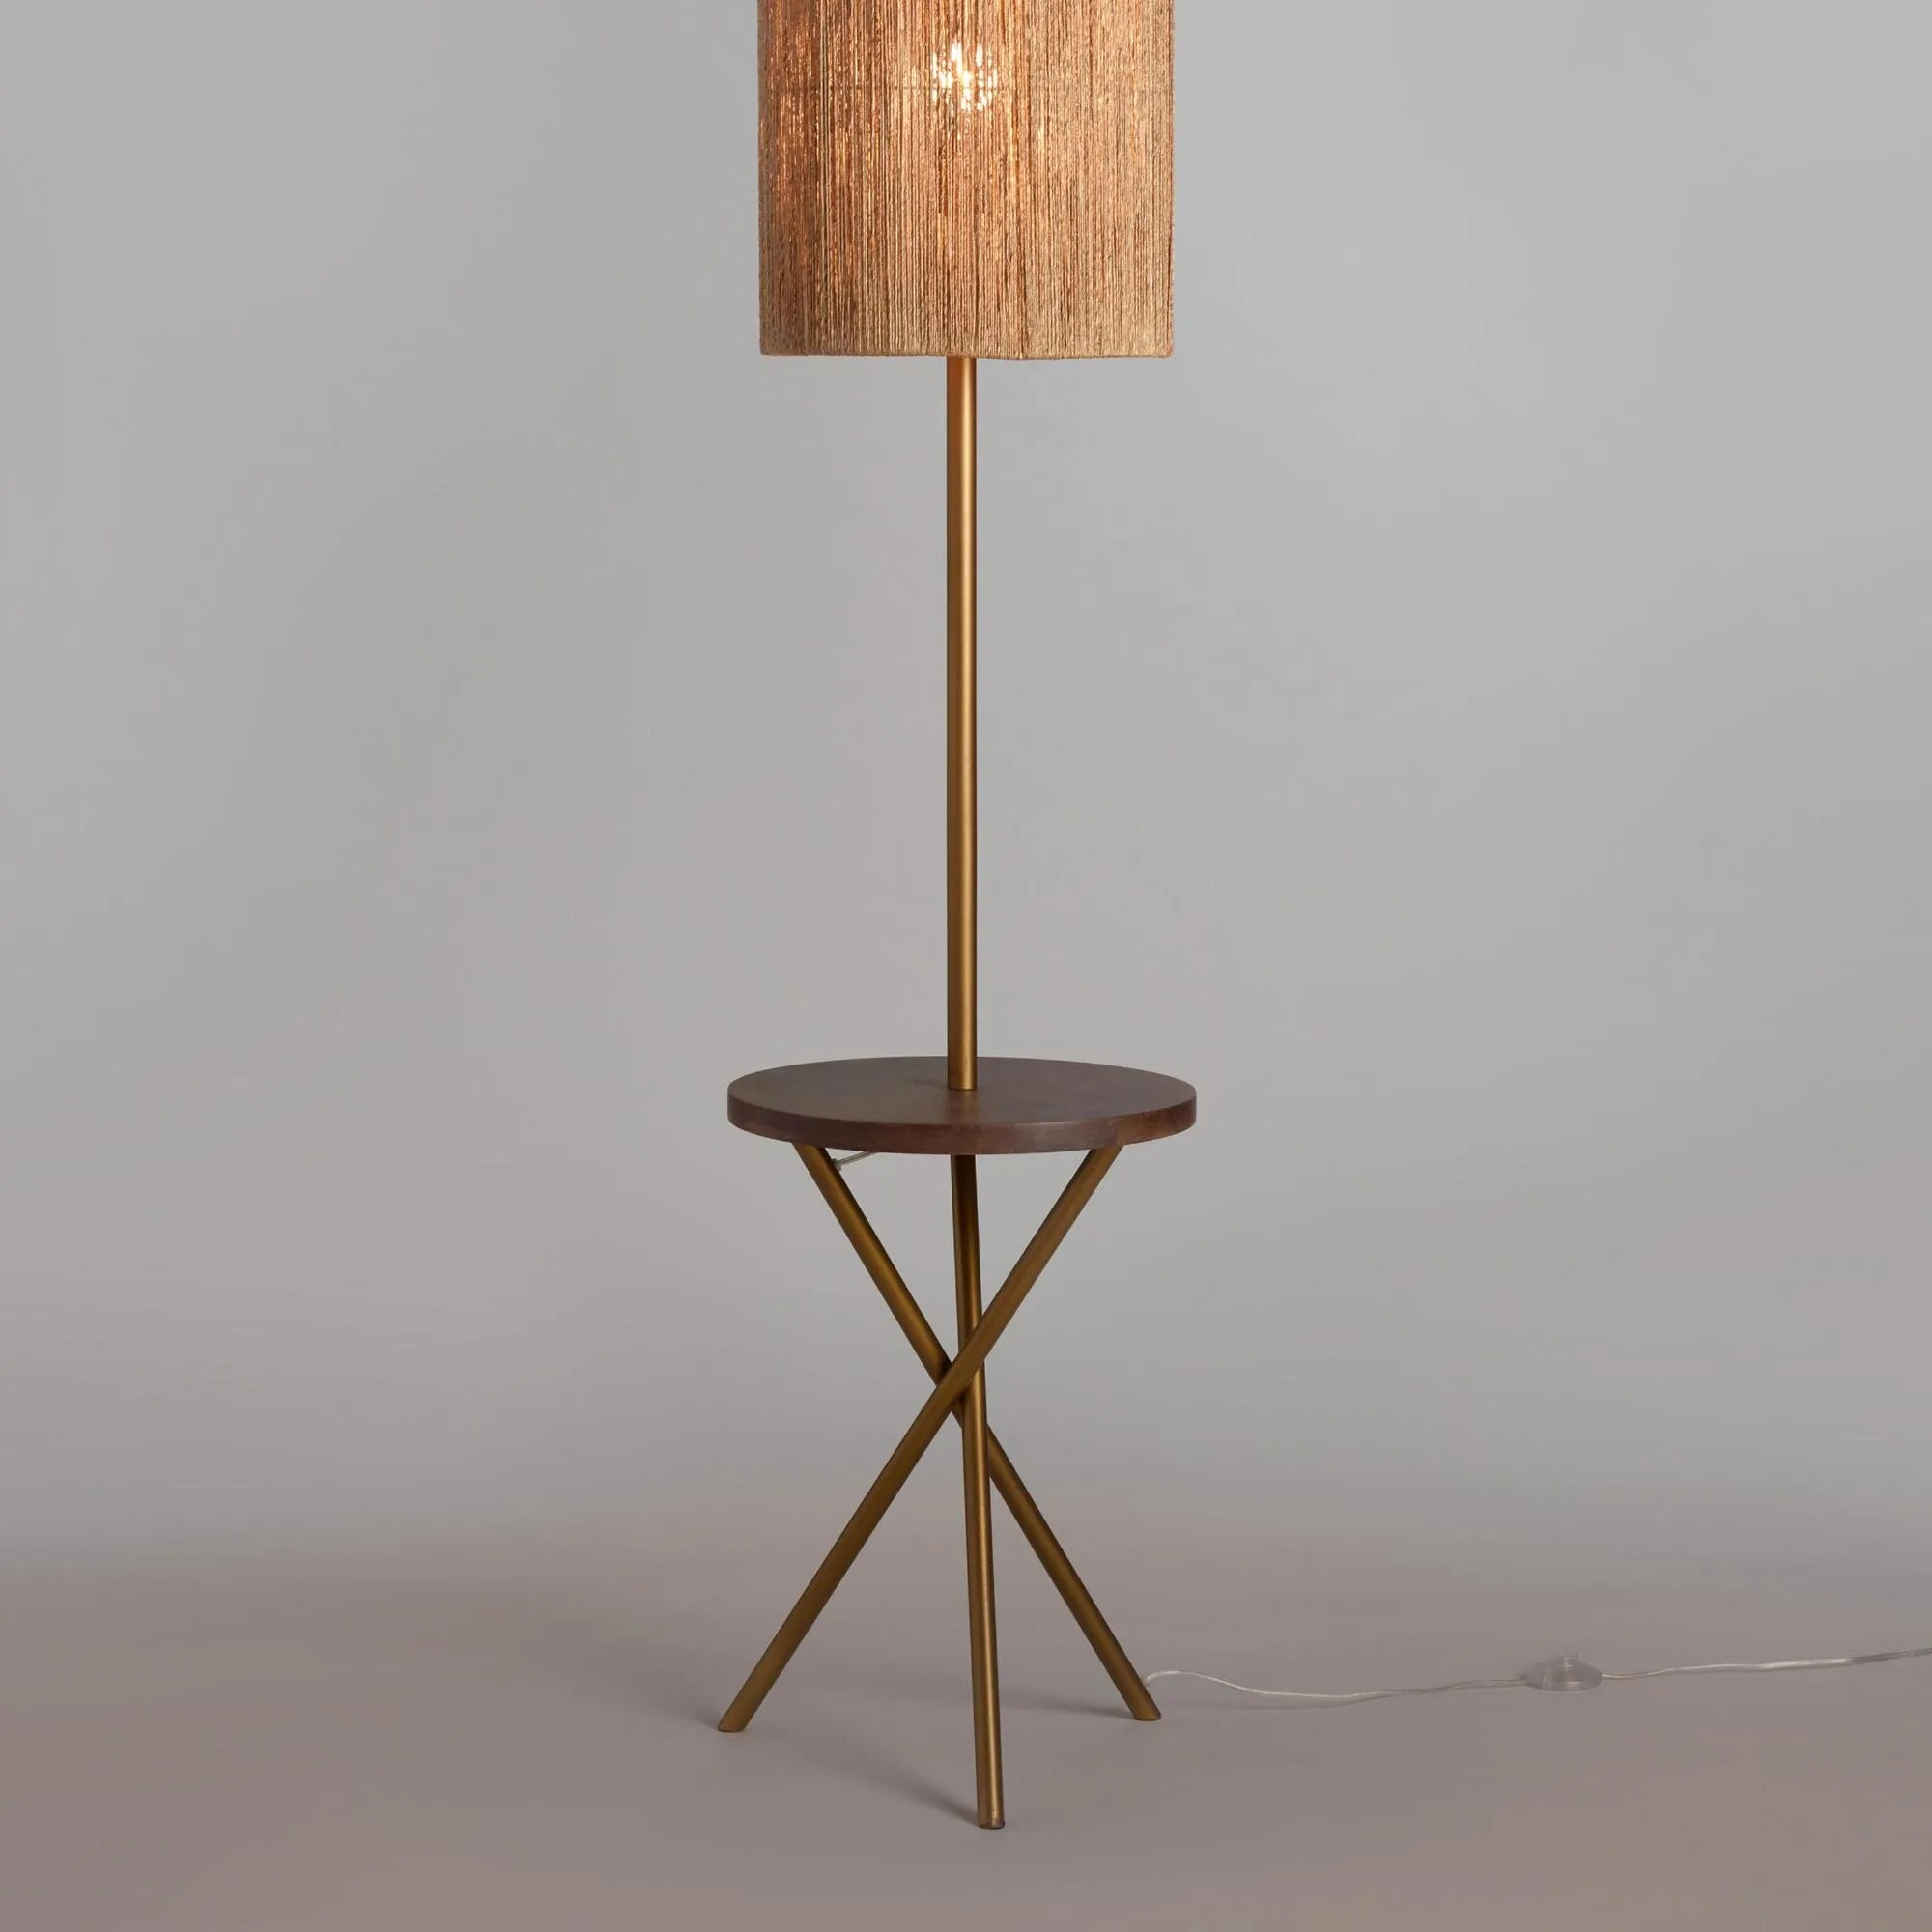 Gold Floor Reading Lamp 10 Floor Lamps With Tables Attached That Don T Look Like Your